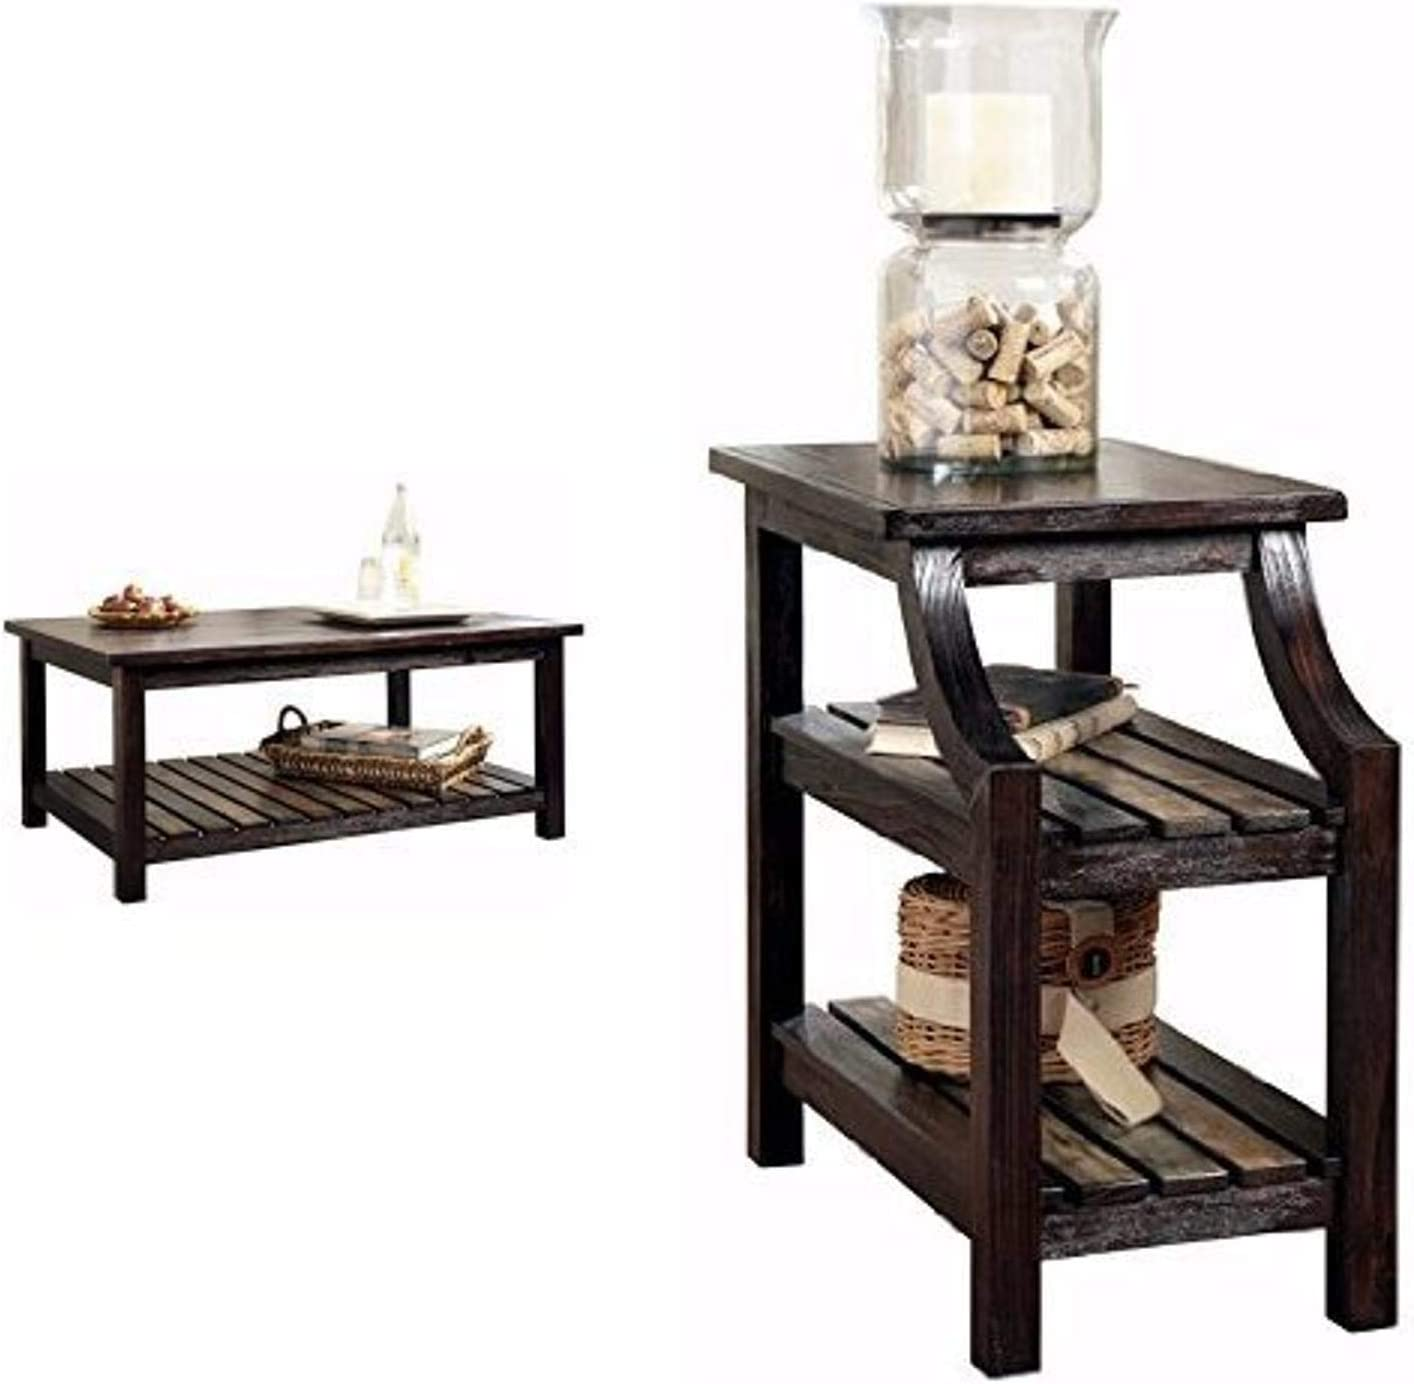 Ashley Furniture Signature Design - Mestler Living Room Table Set - Coffee Table with Two Double-Shelf End Tables - Rustic Brown